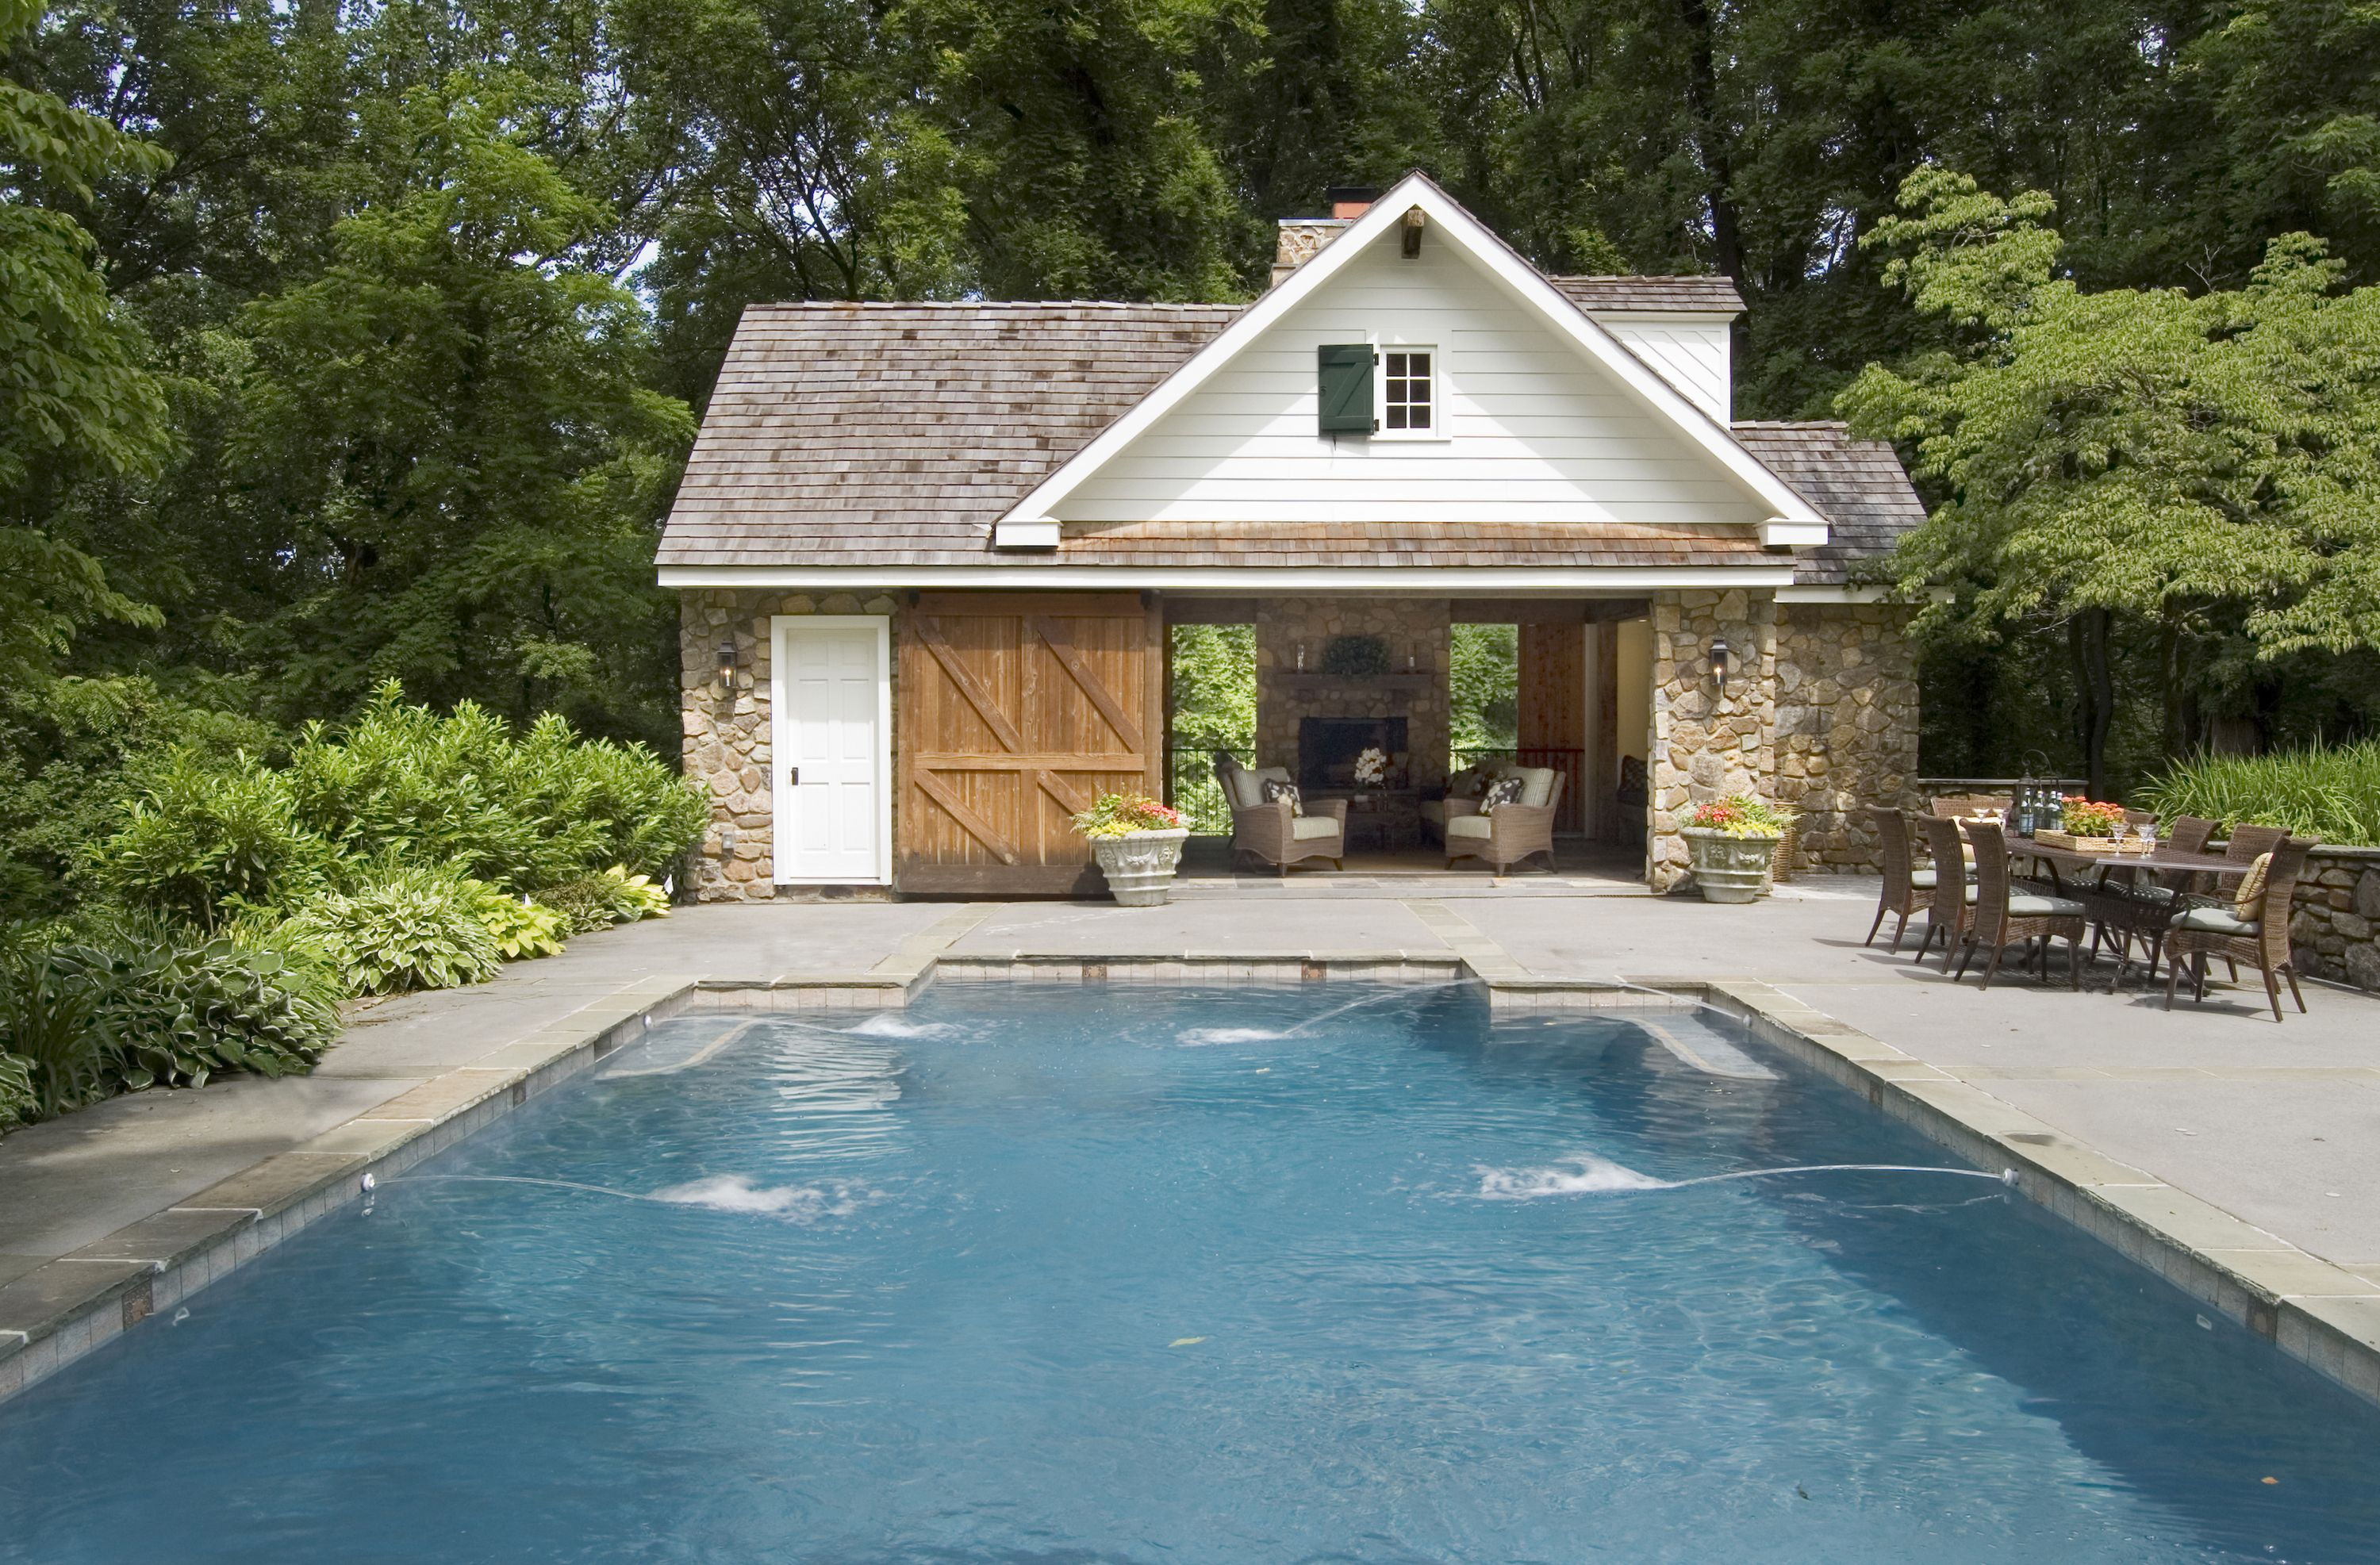 Pool House Designs Plans style guide poolside escapes year round pool house this homeowner wanted an Find This Pin And More On House Love Enchanting Pool House Designs